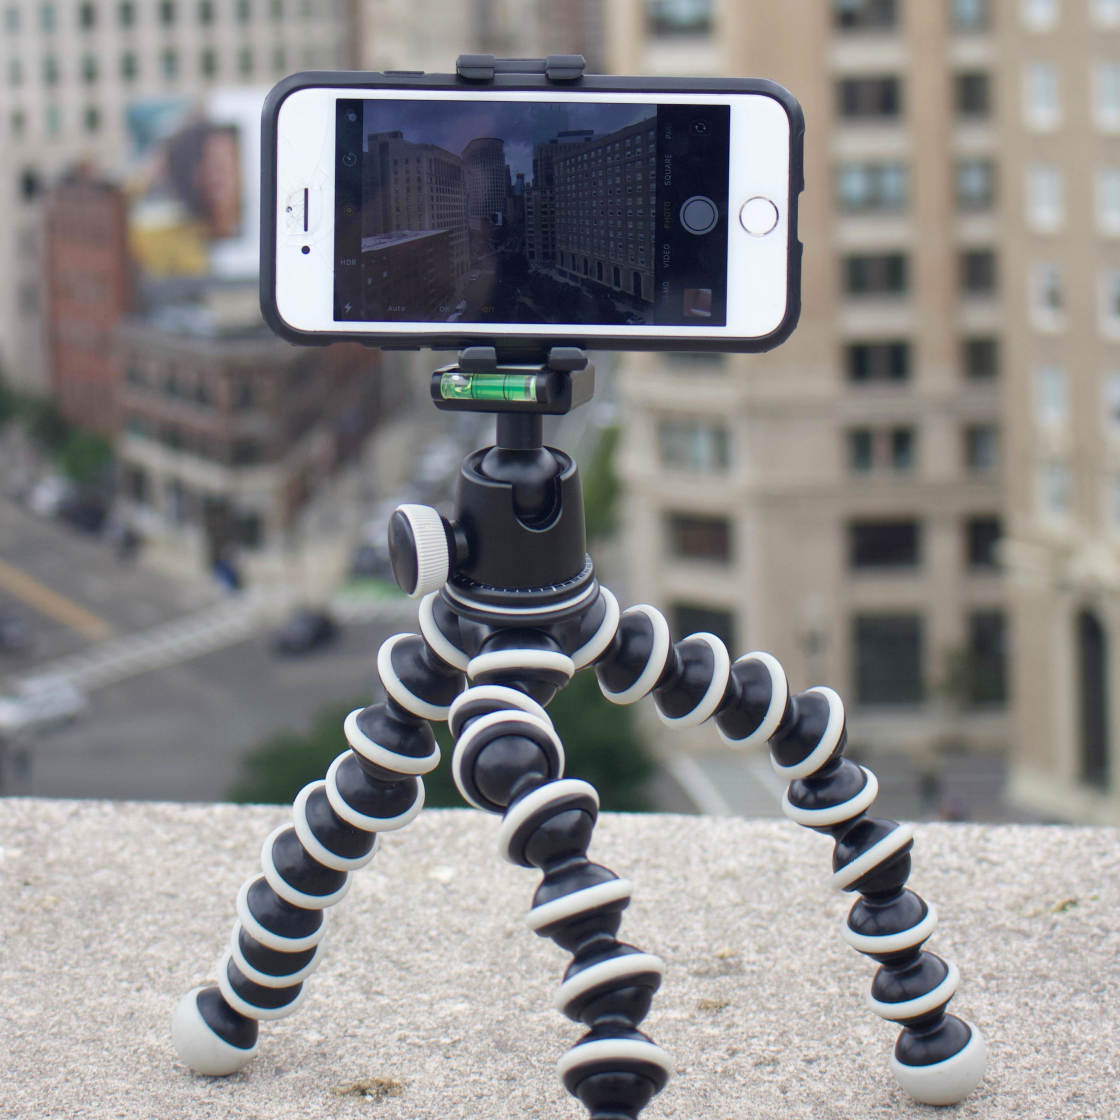 iPhone Time Lapse: How To Shoot Amazing Time Lapse Videos